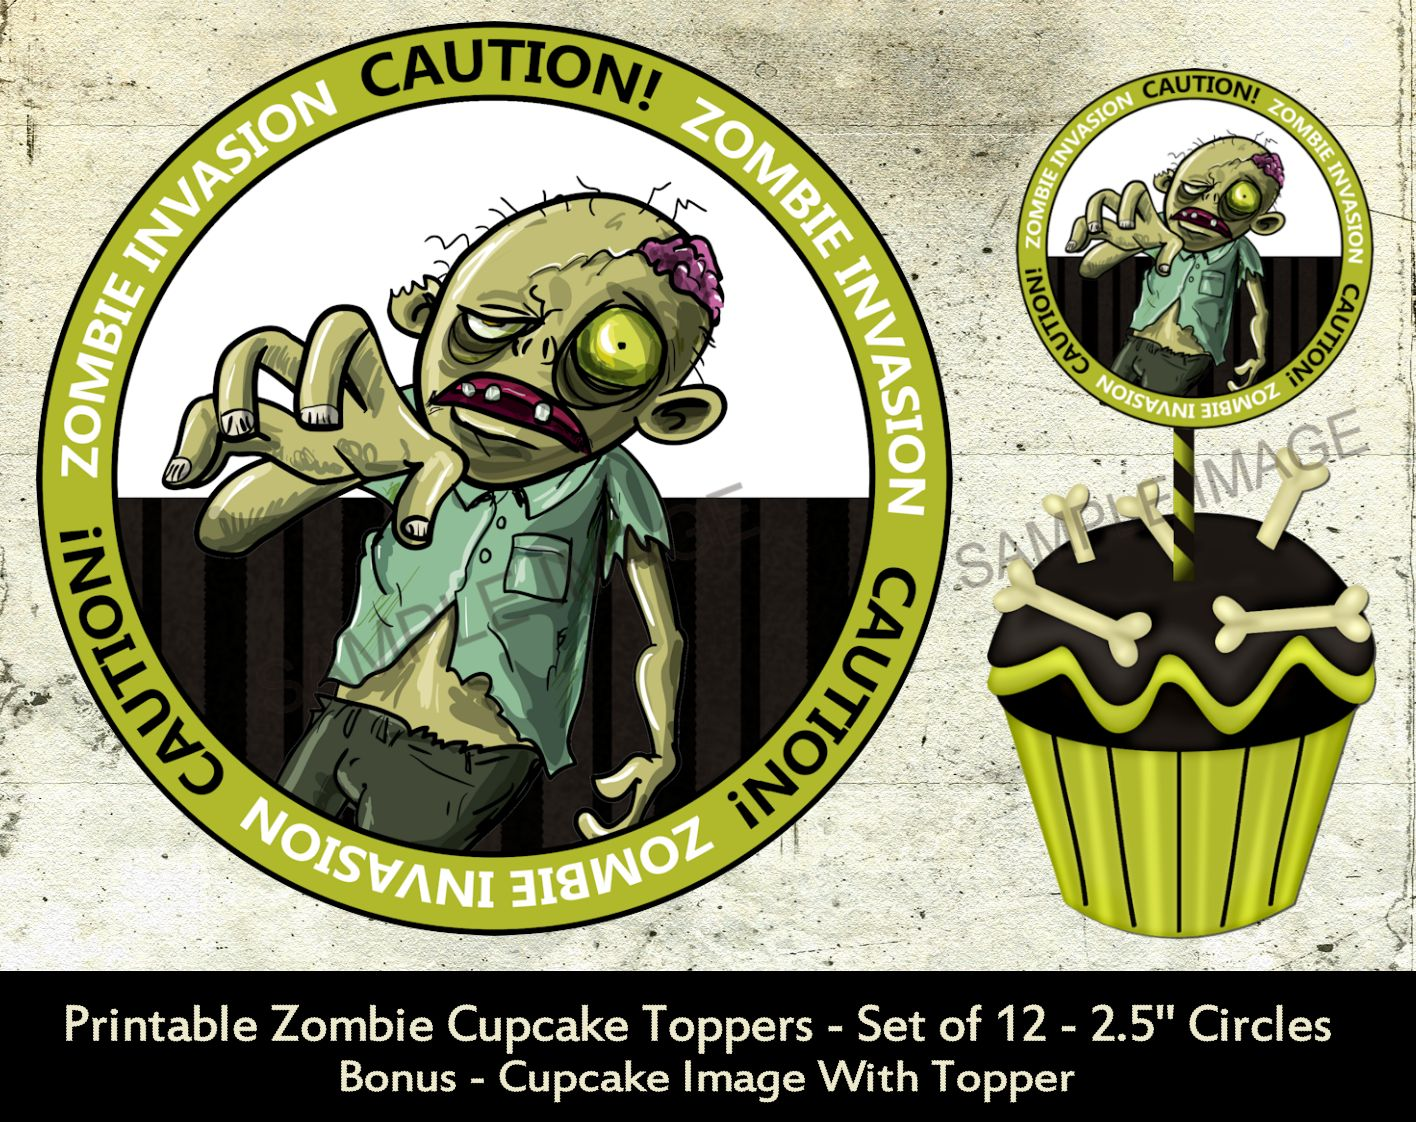 Zombie Invasion Printable Cupcake Toppers Caution